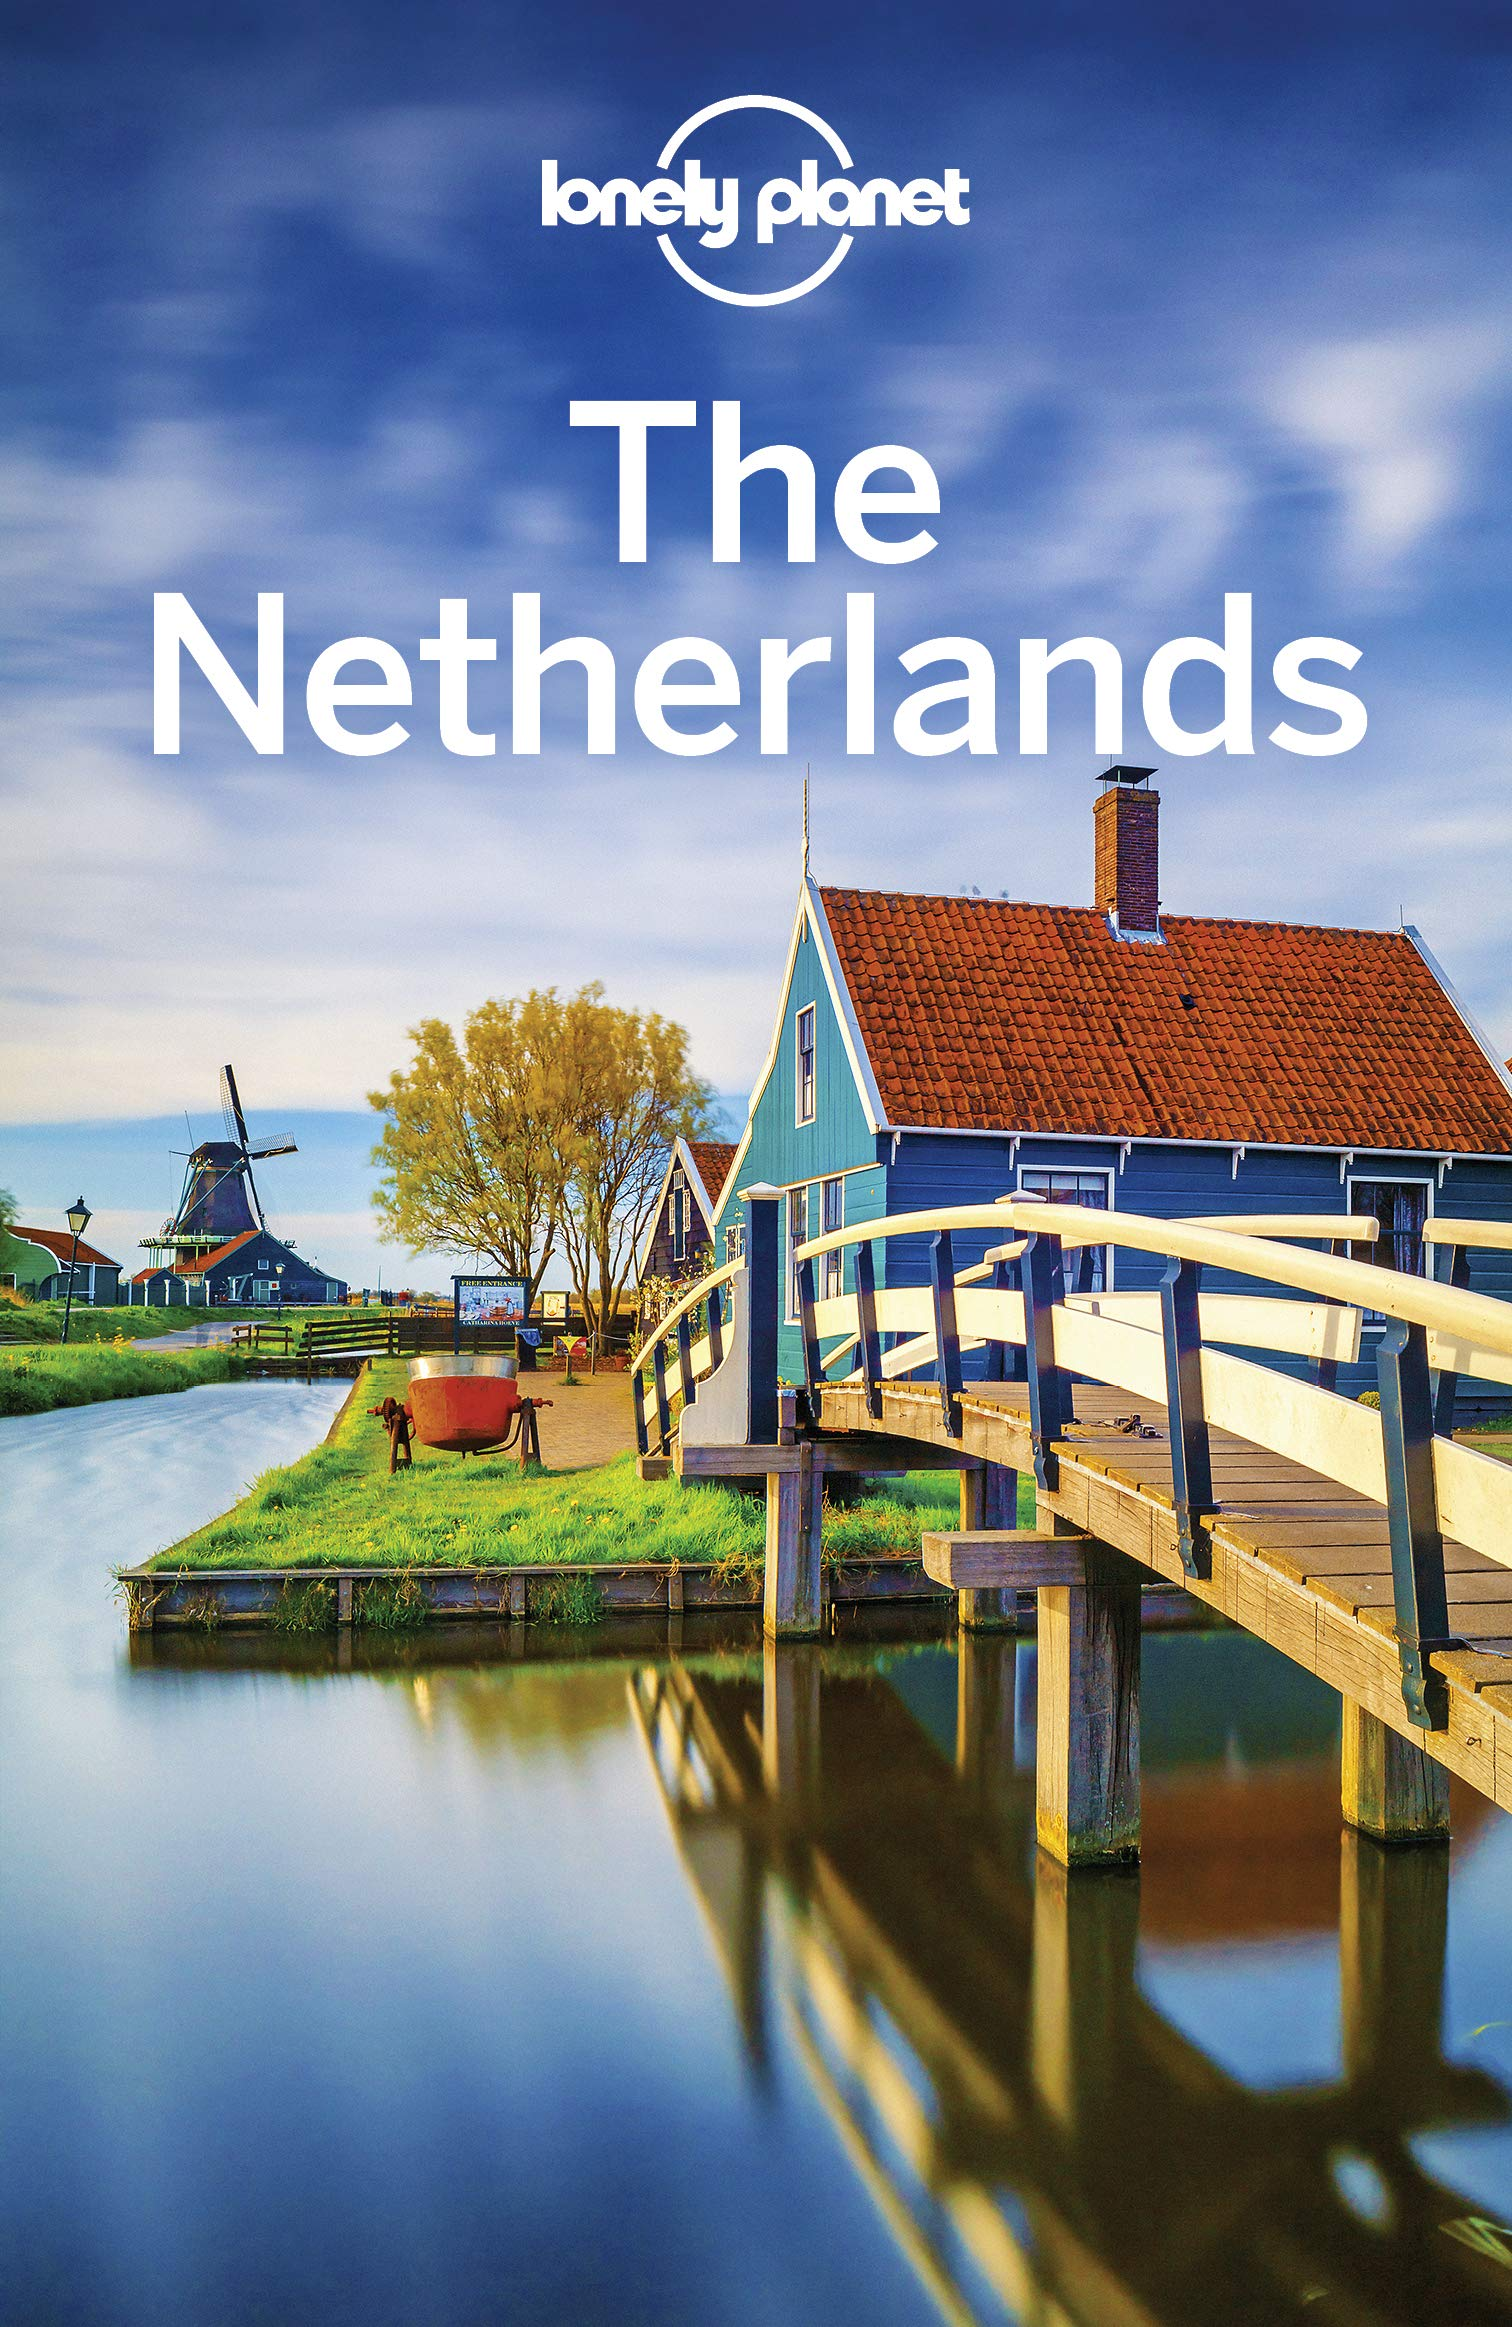 Lonely Planet The Netherlands  Travel Guide   English Edition